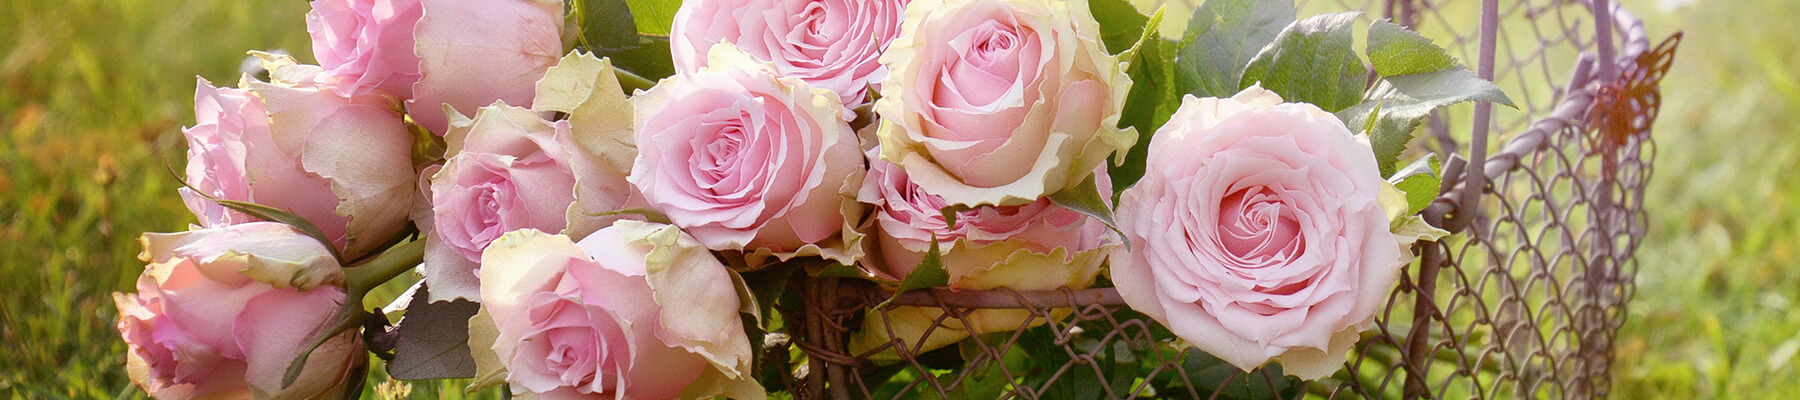 header image of pink roses